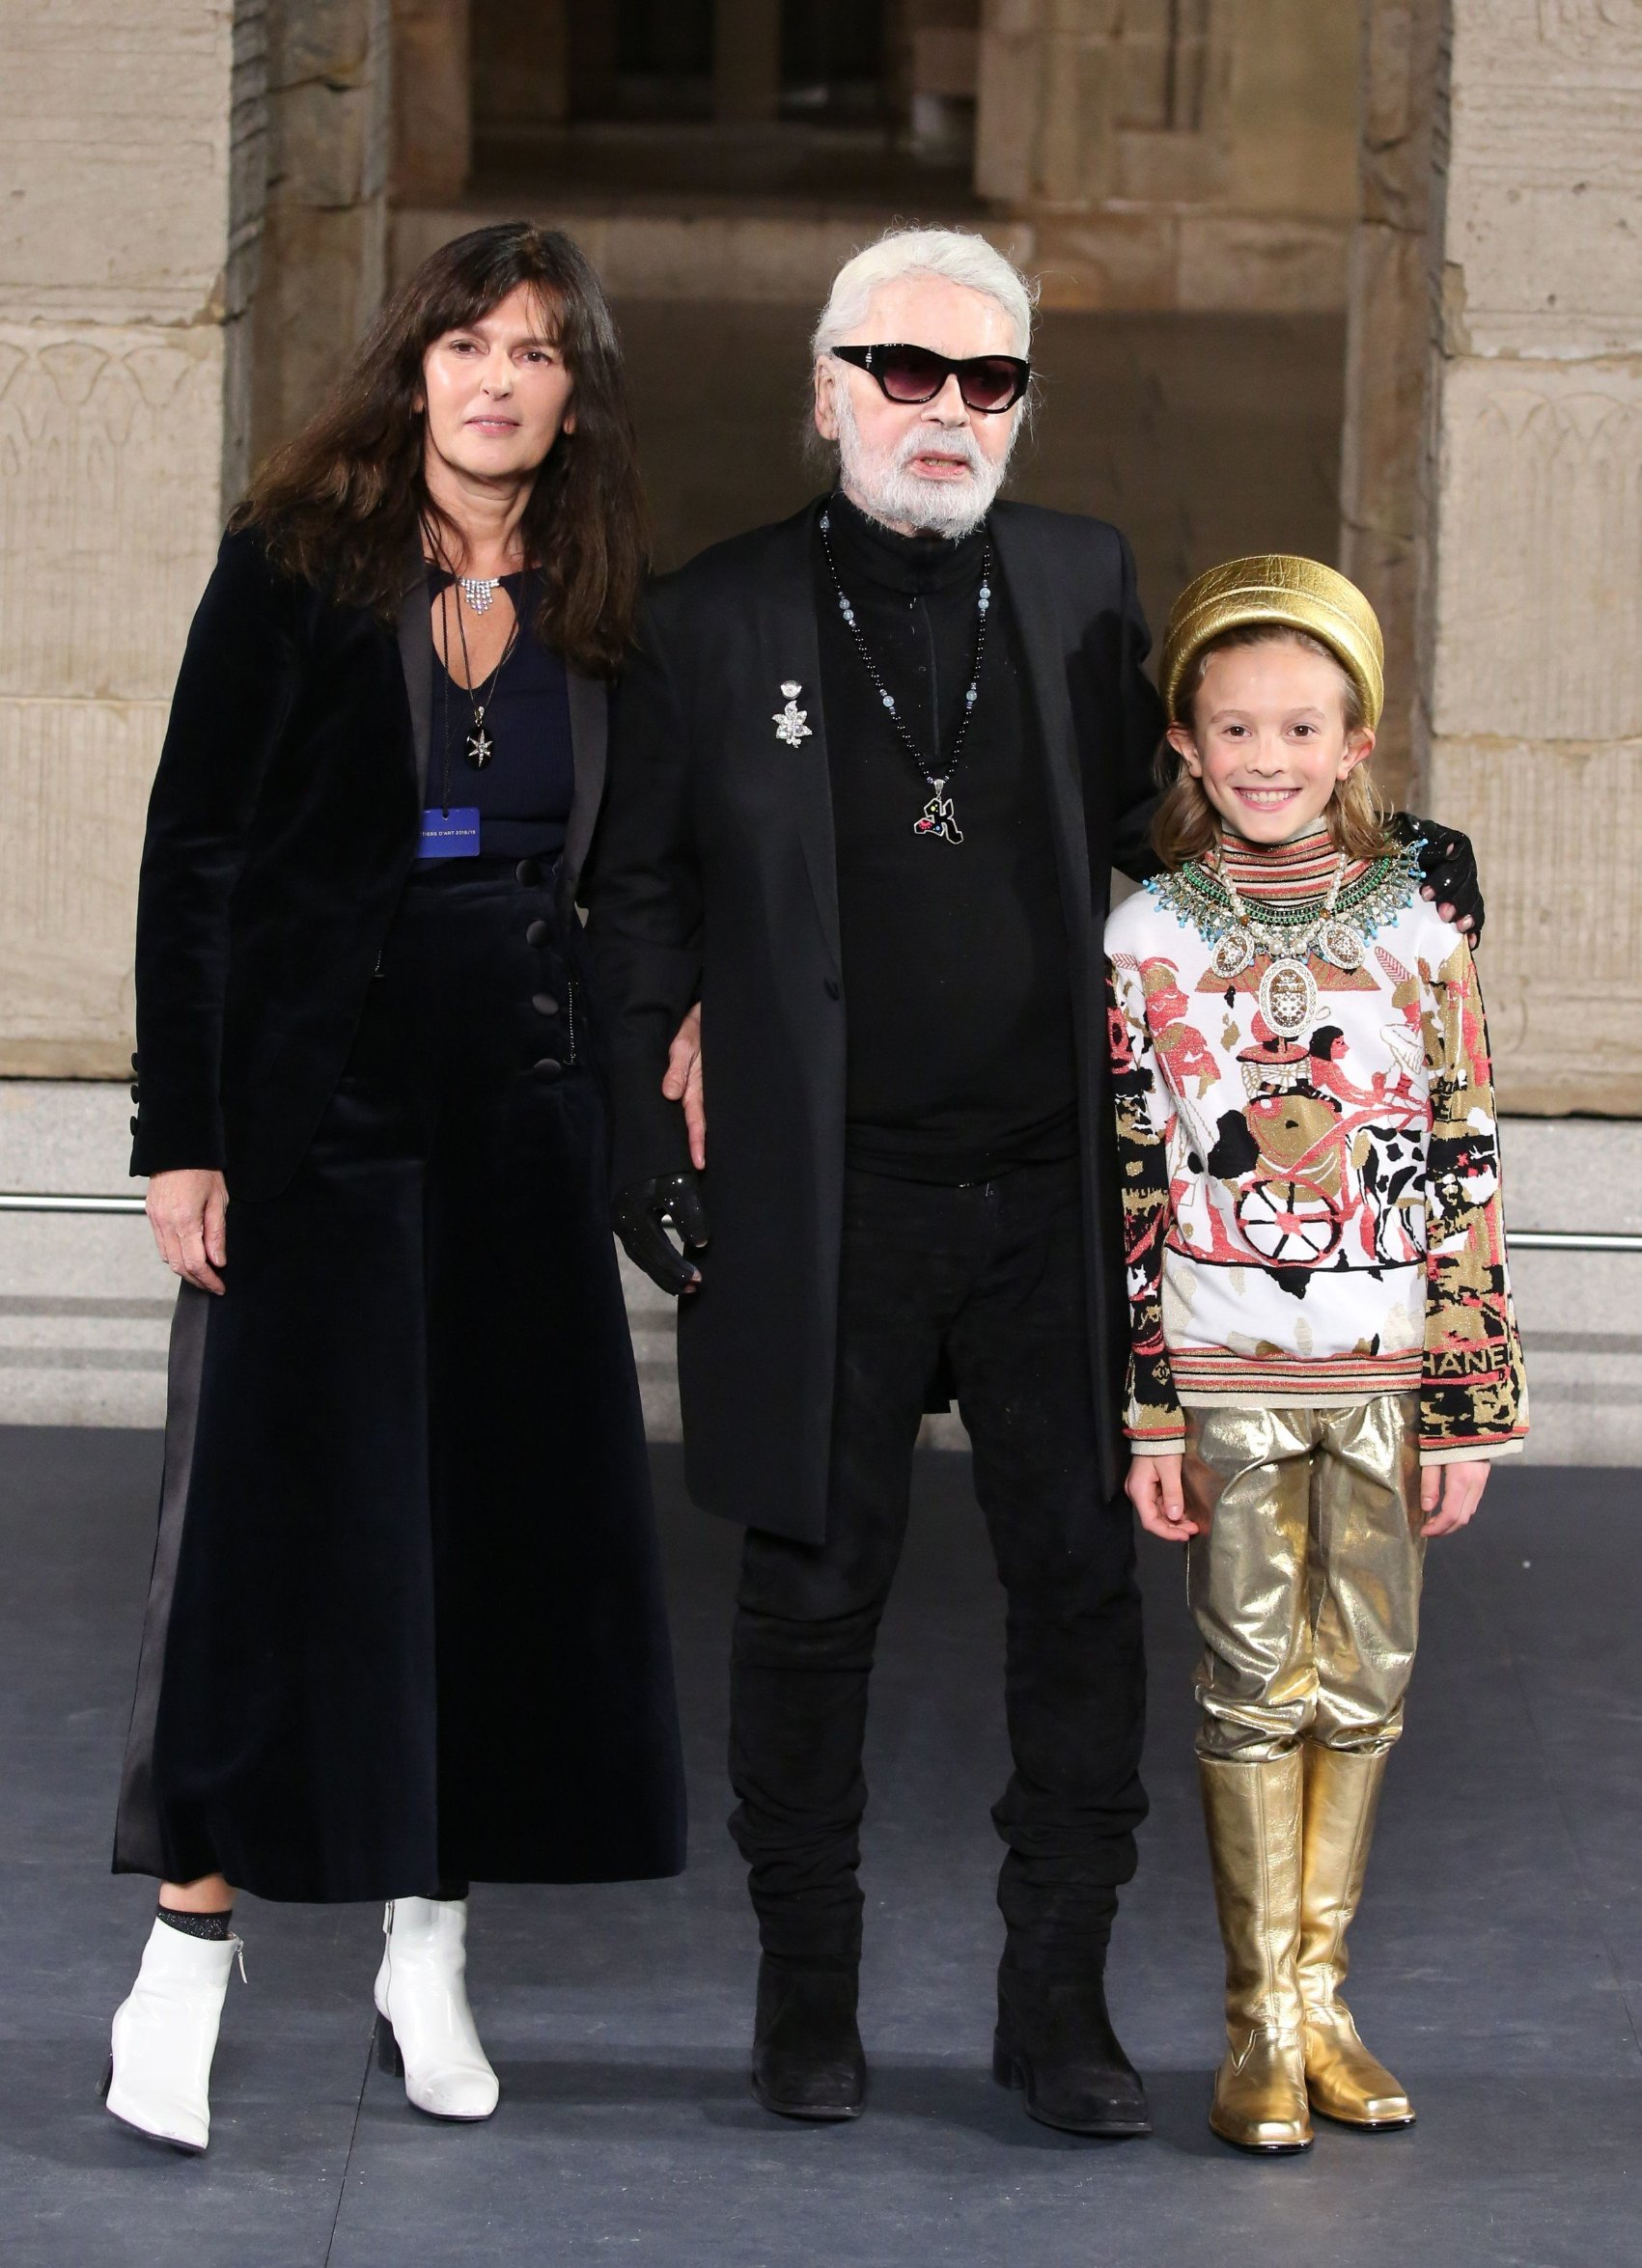 Virgine Viard, Karl Lagerfeld and Hudson Karoenig on the catwalk Chanel Metiers d'Art 2018-2019 show, Runway, New York, USA - 04 Dec 2018, Image: 400505616, License: Rights-managed, Restrictions: , Model Release: no, Credit line: Profimedia, TEMP Rex Features